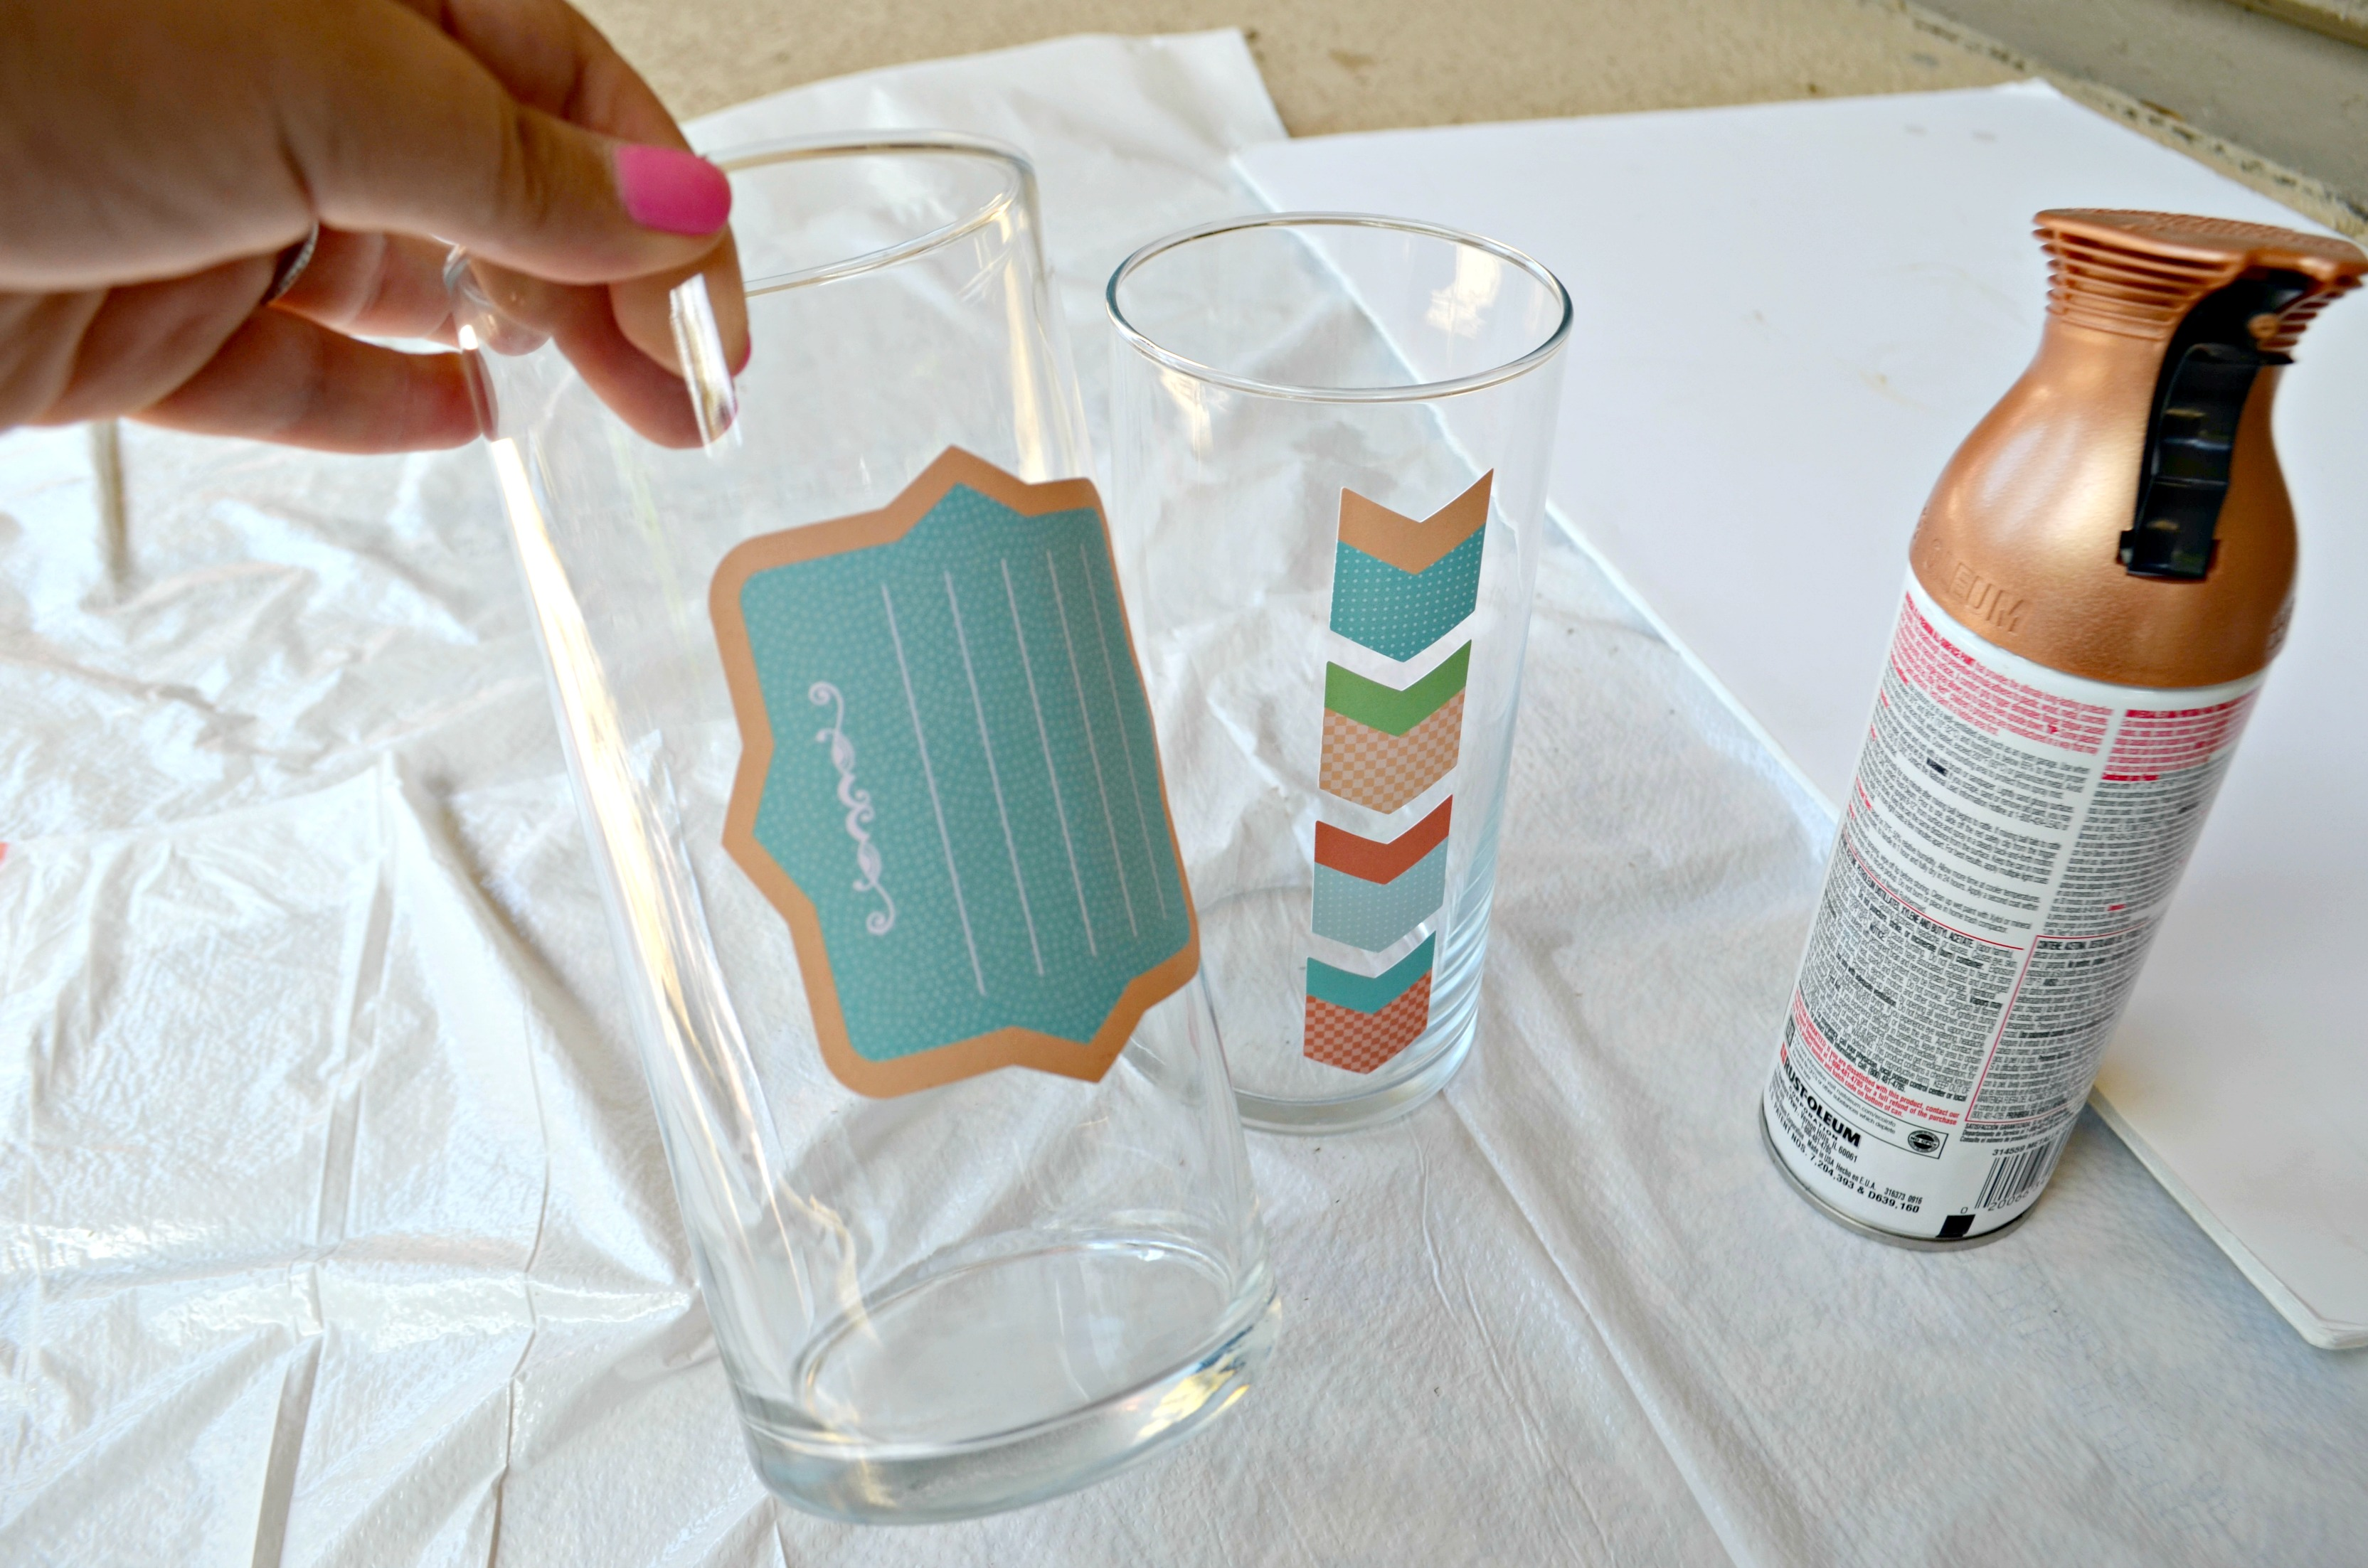 Adhesive stickers form the frame and should be applied prior to painting.